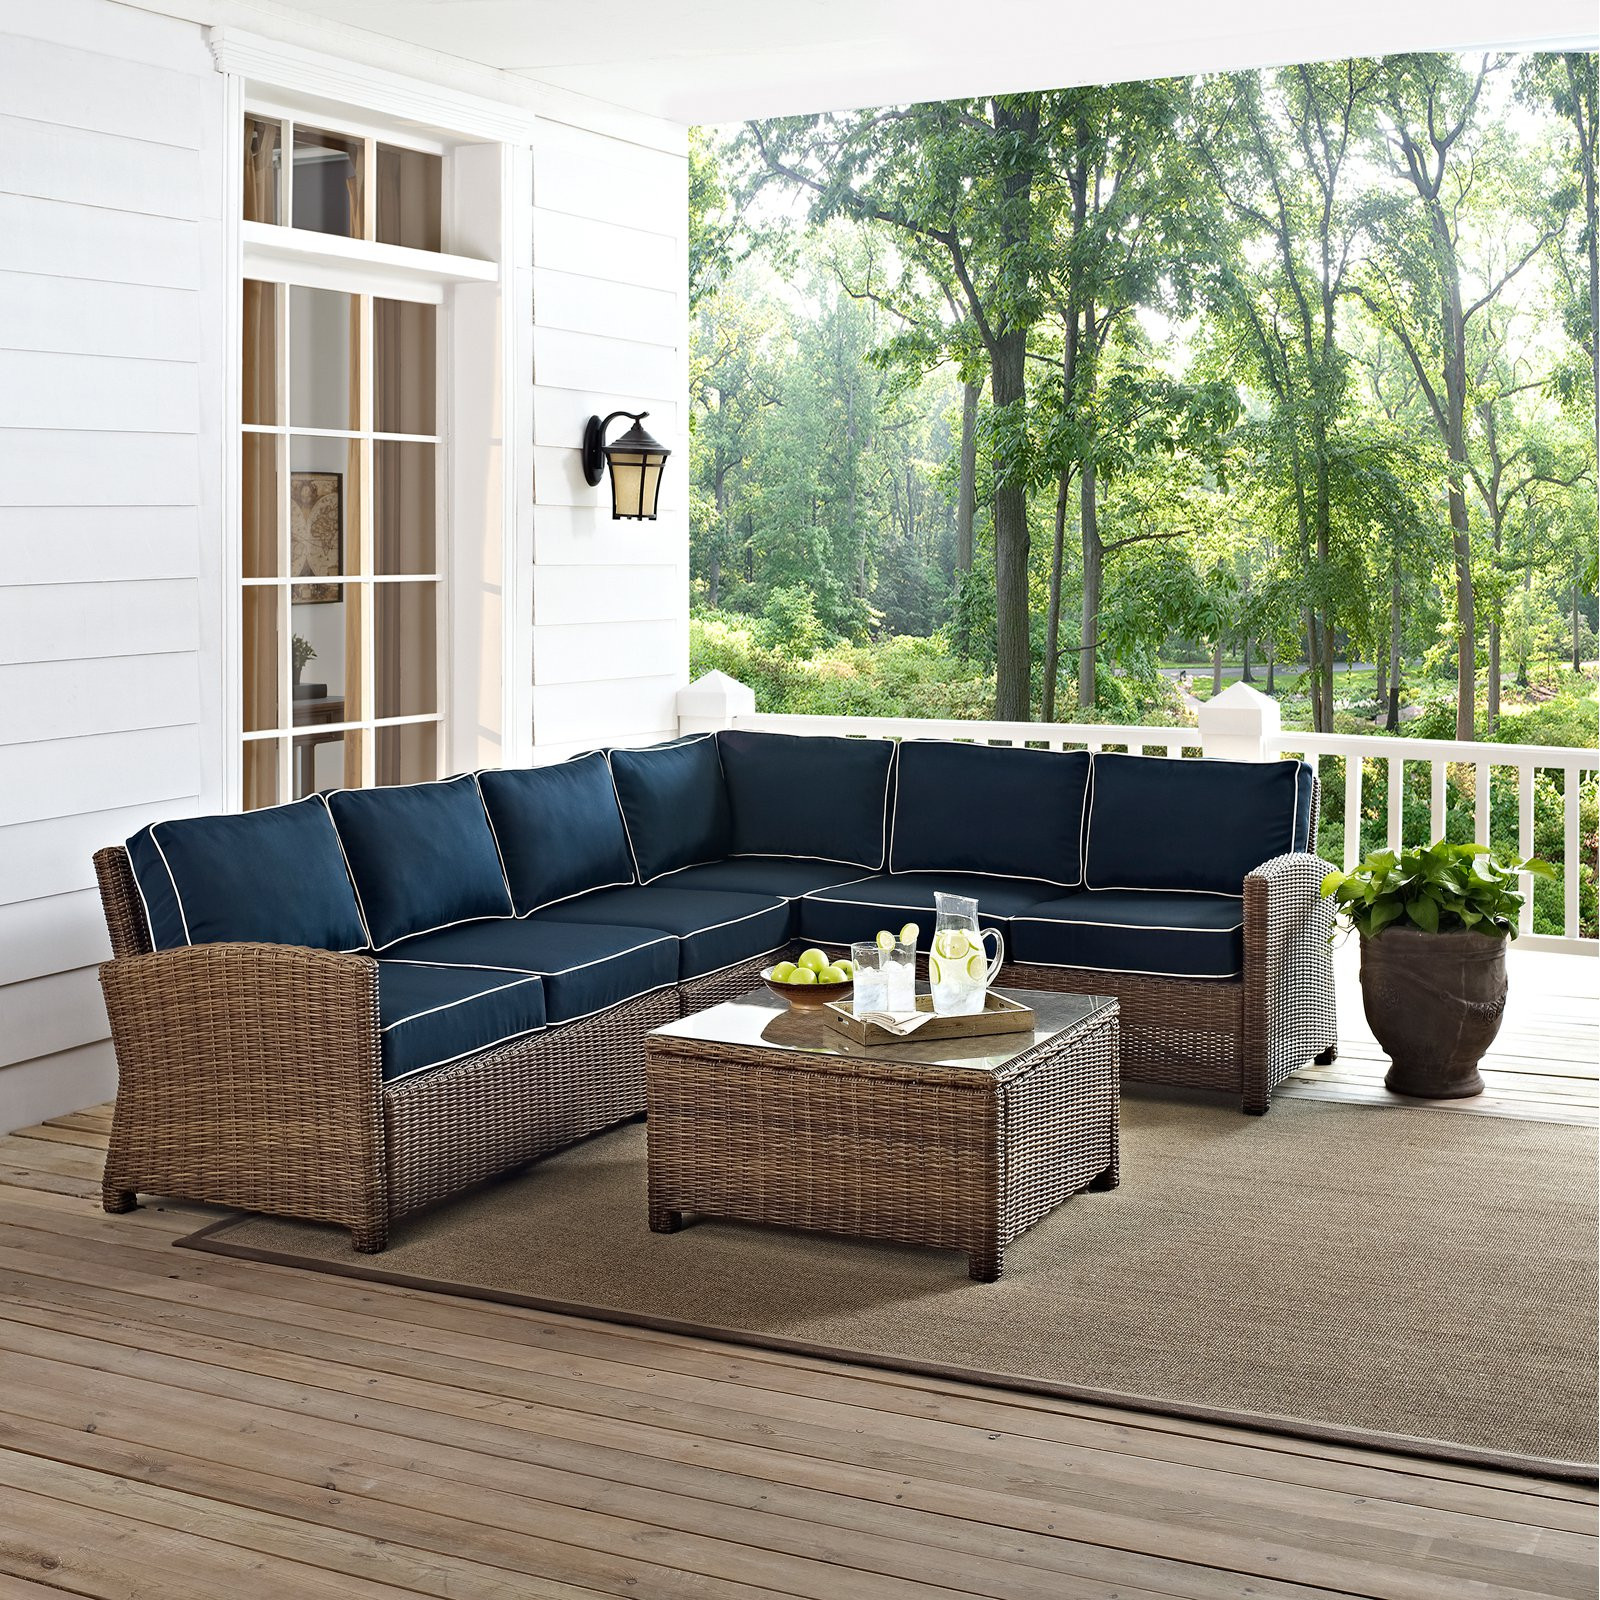 Best ideas about At Home Patio Furniture . Save or Pin Crosley Bradenton 5 Piece Outdoor Wicker Sectional Now.